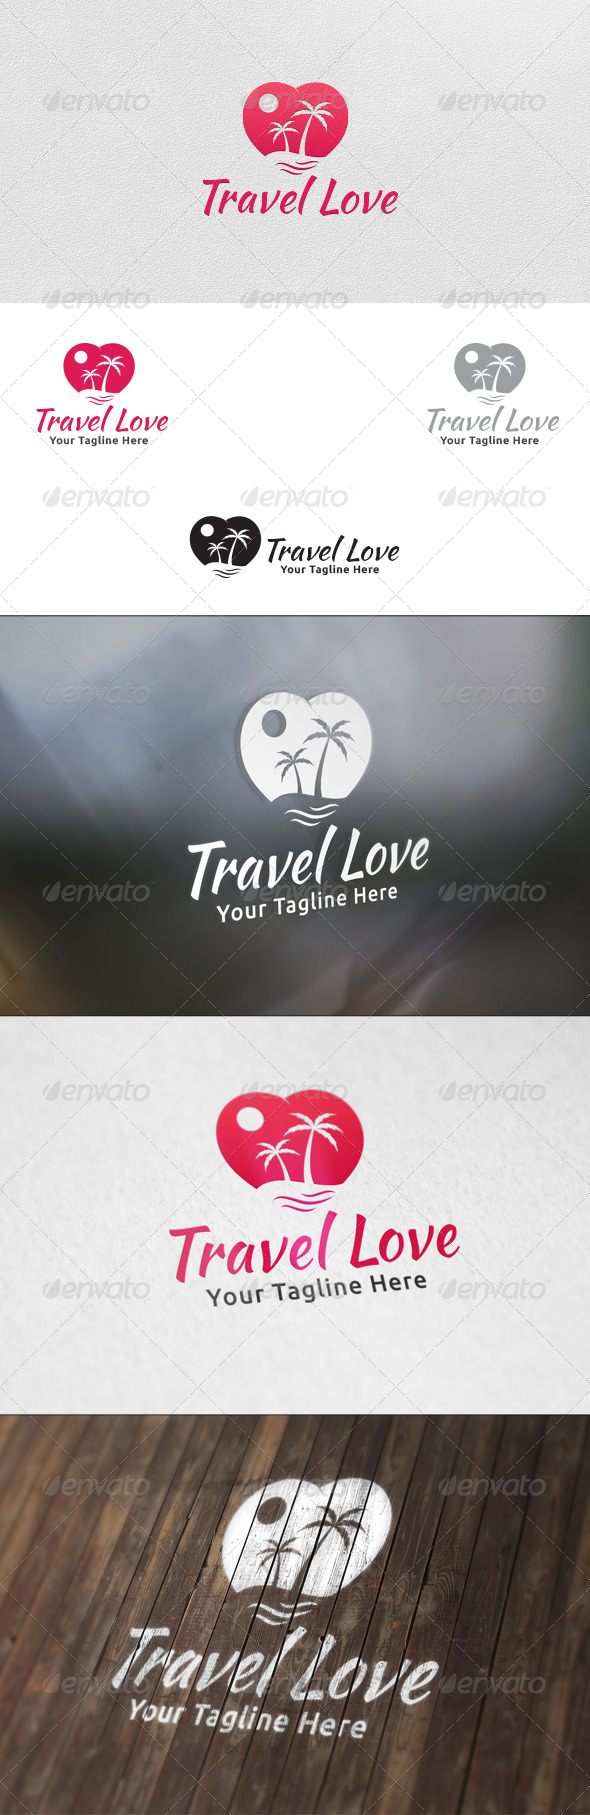 Travel Love Logo Template